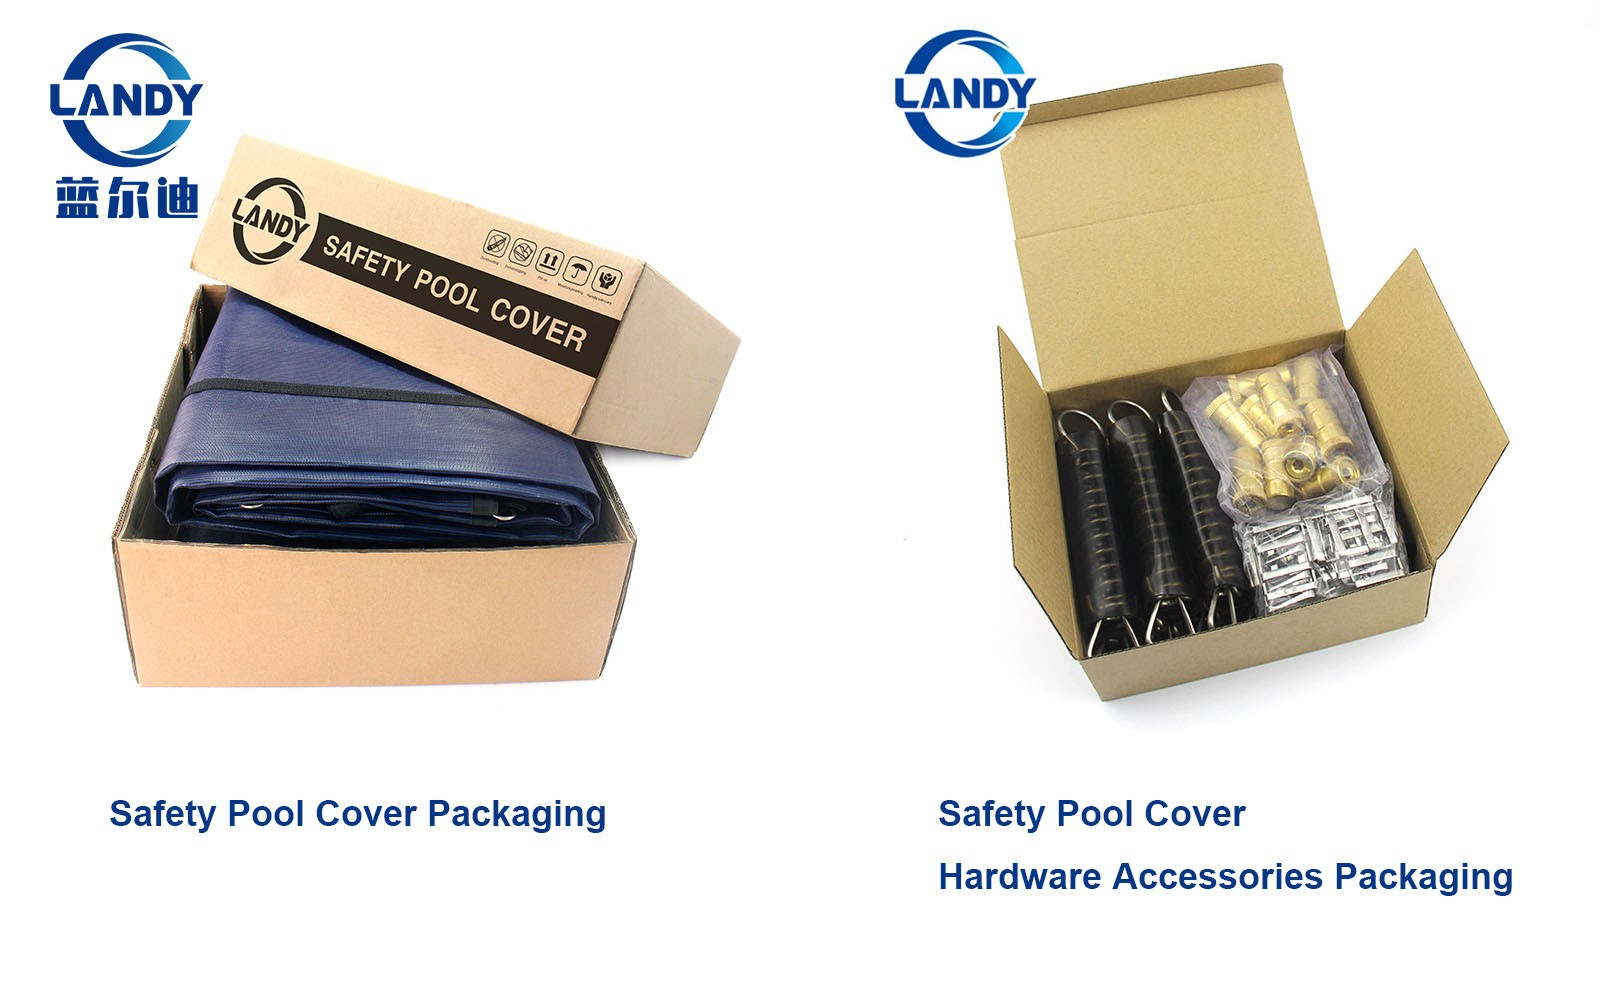 Safety pool cover package